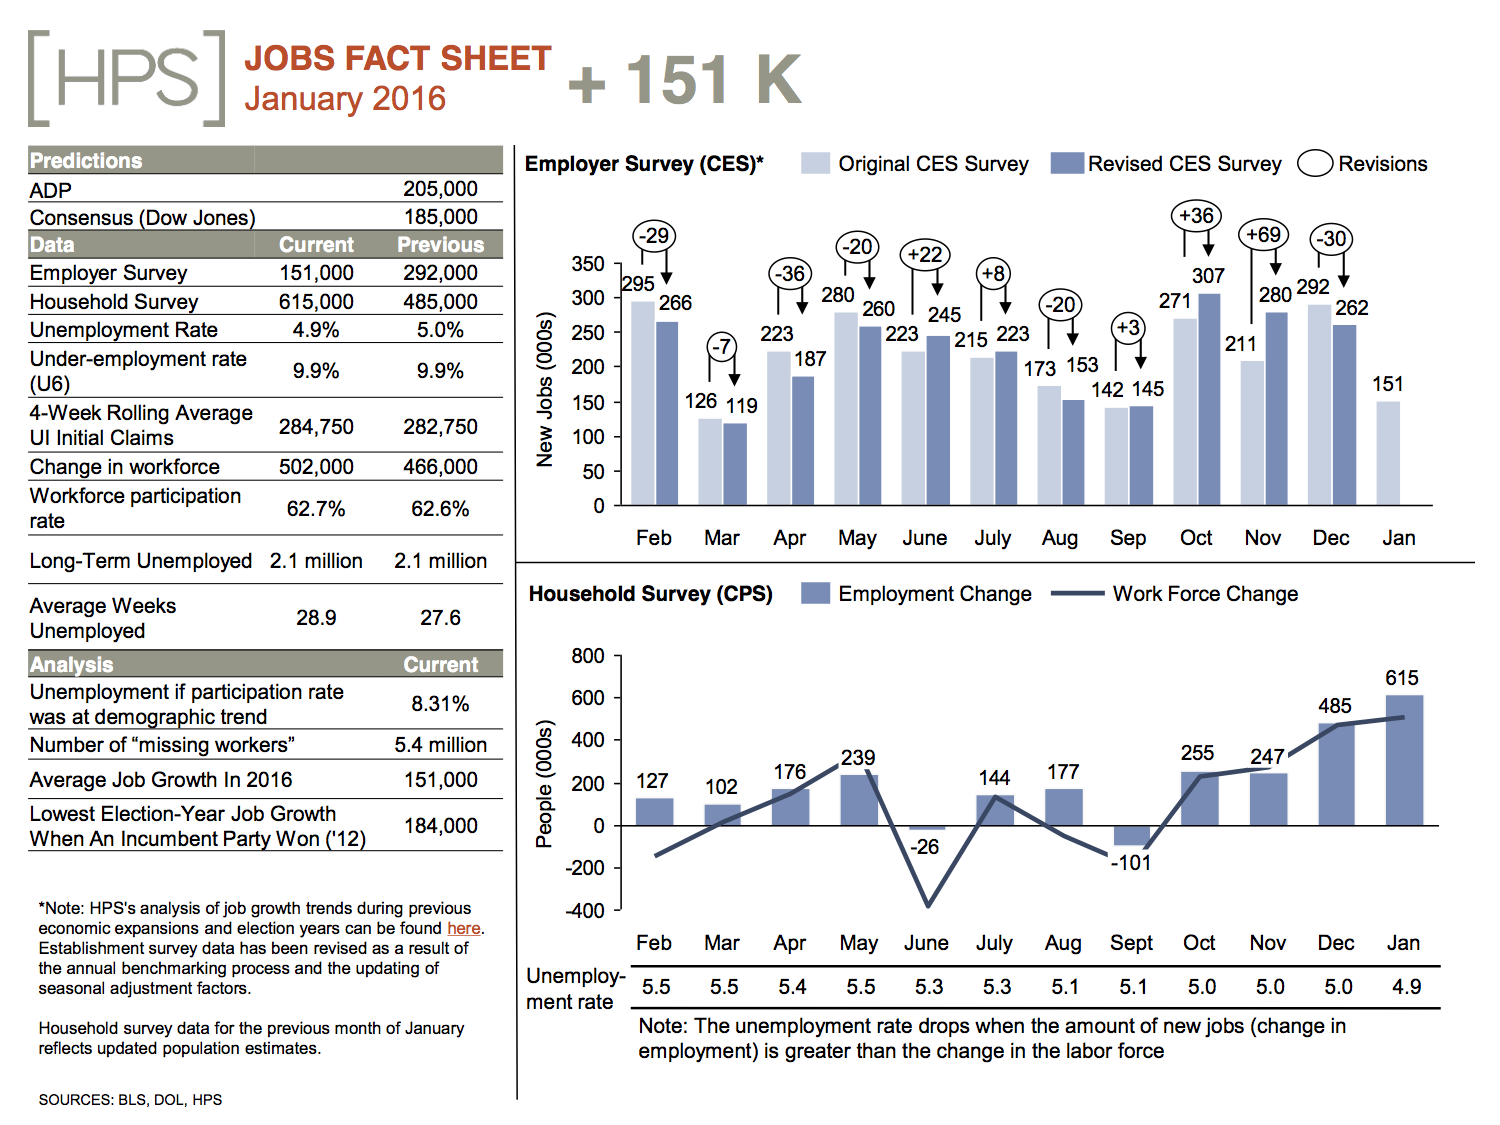 january20jobs20day20fact20sheet2028529-copy